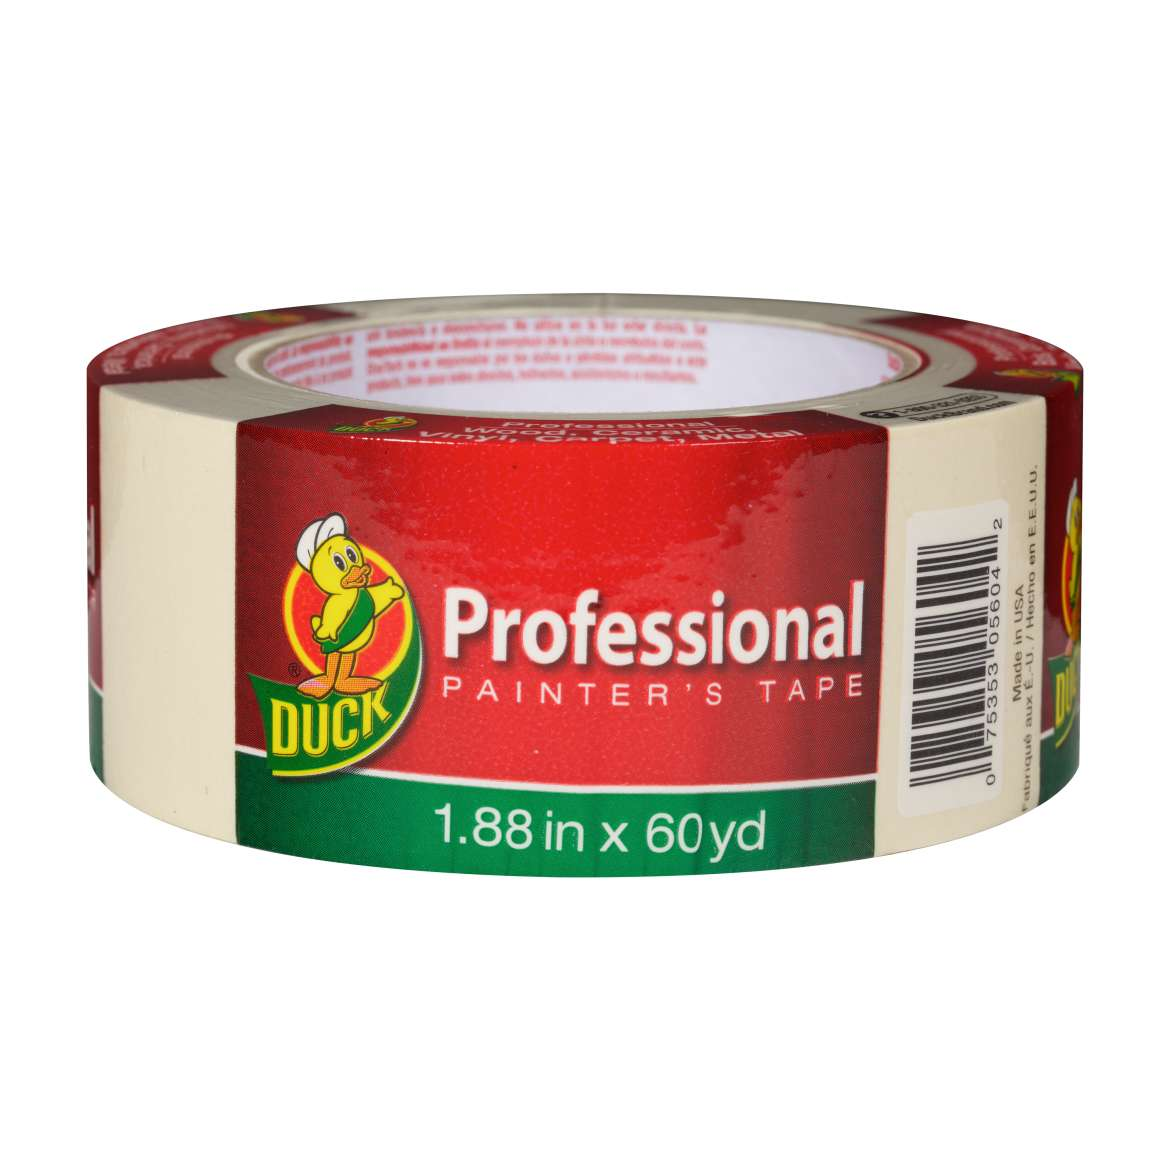 Duck® Brand Professional Painter's Tape - Beige, 1.88 in. x 60 yd. Image